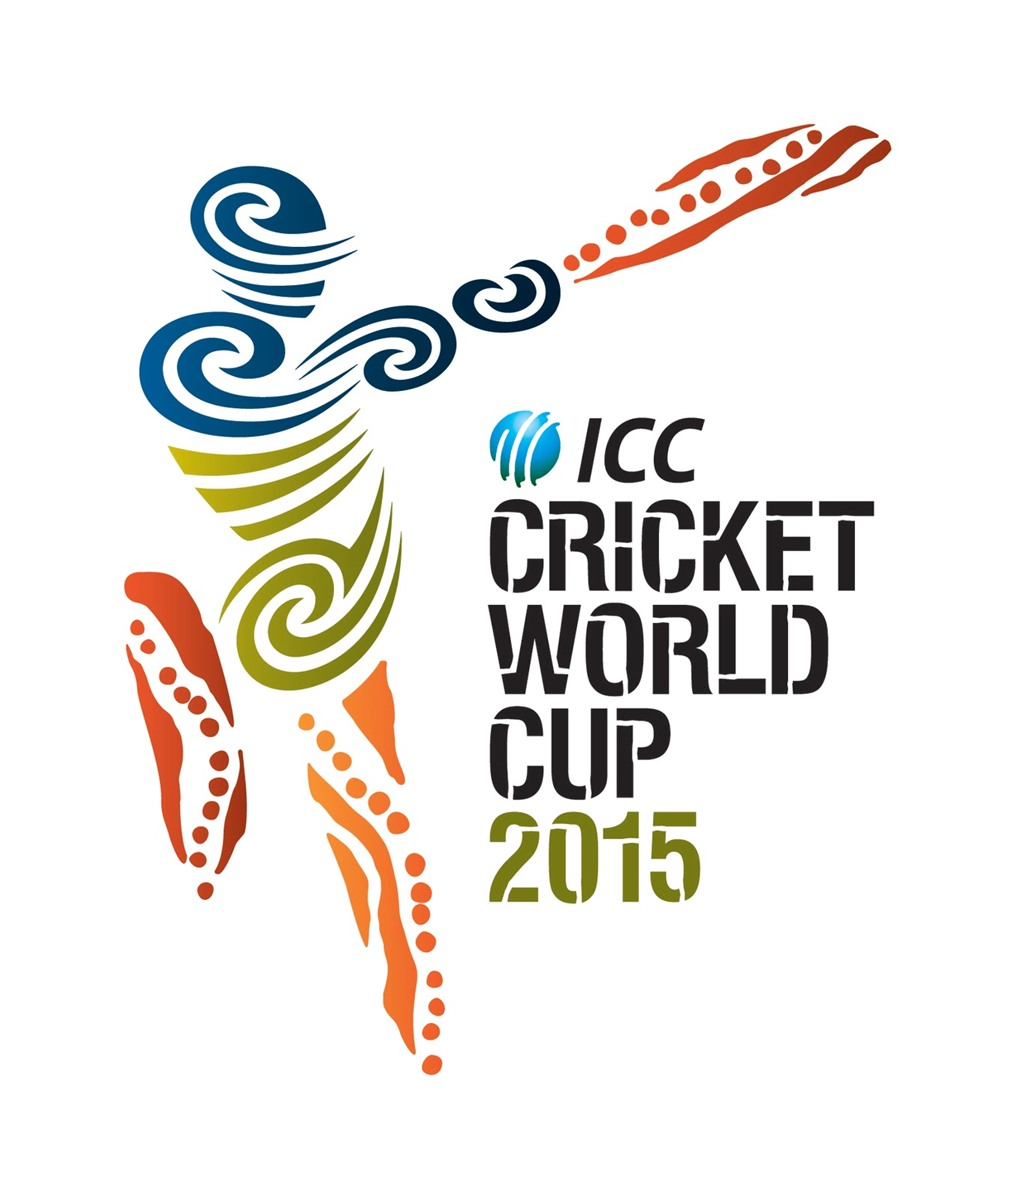 Homestay Network helps with accommodation for the Cricket World Cup #CWC2015